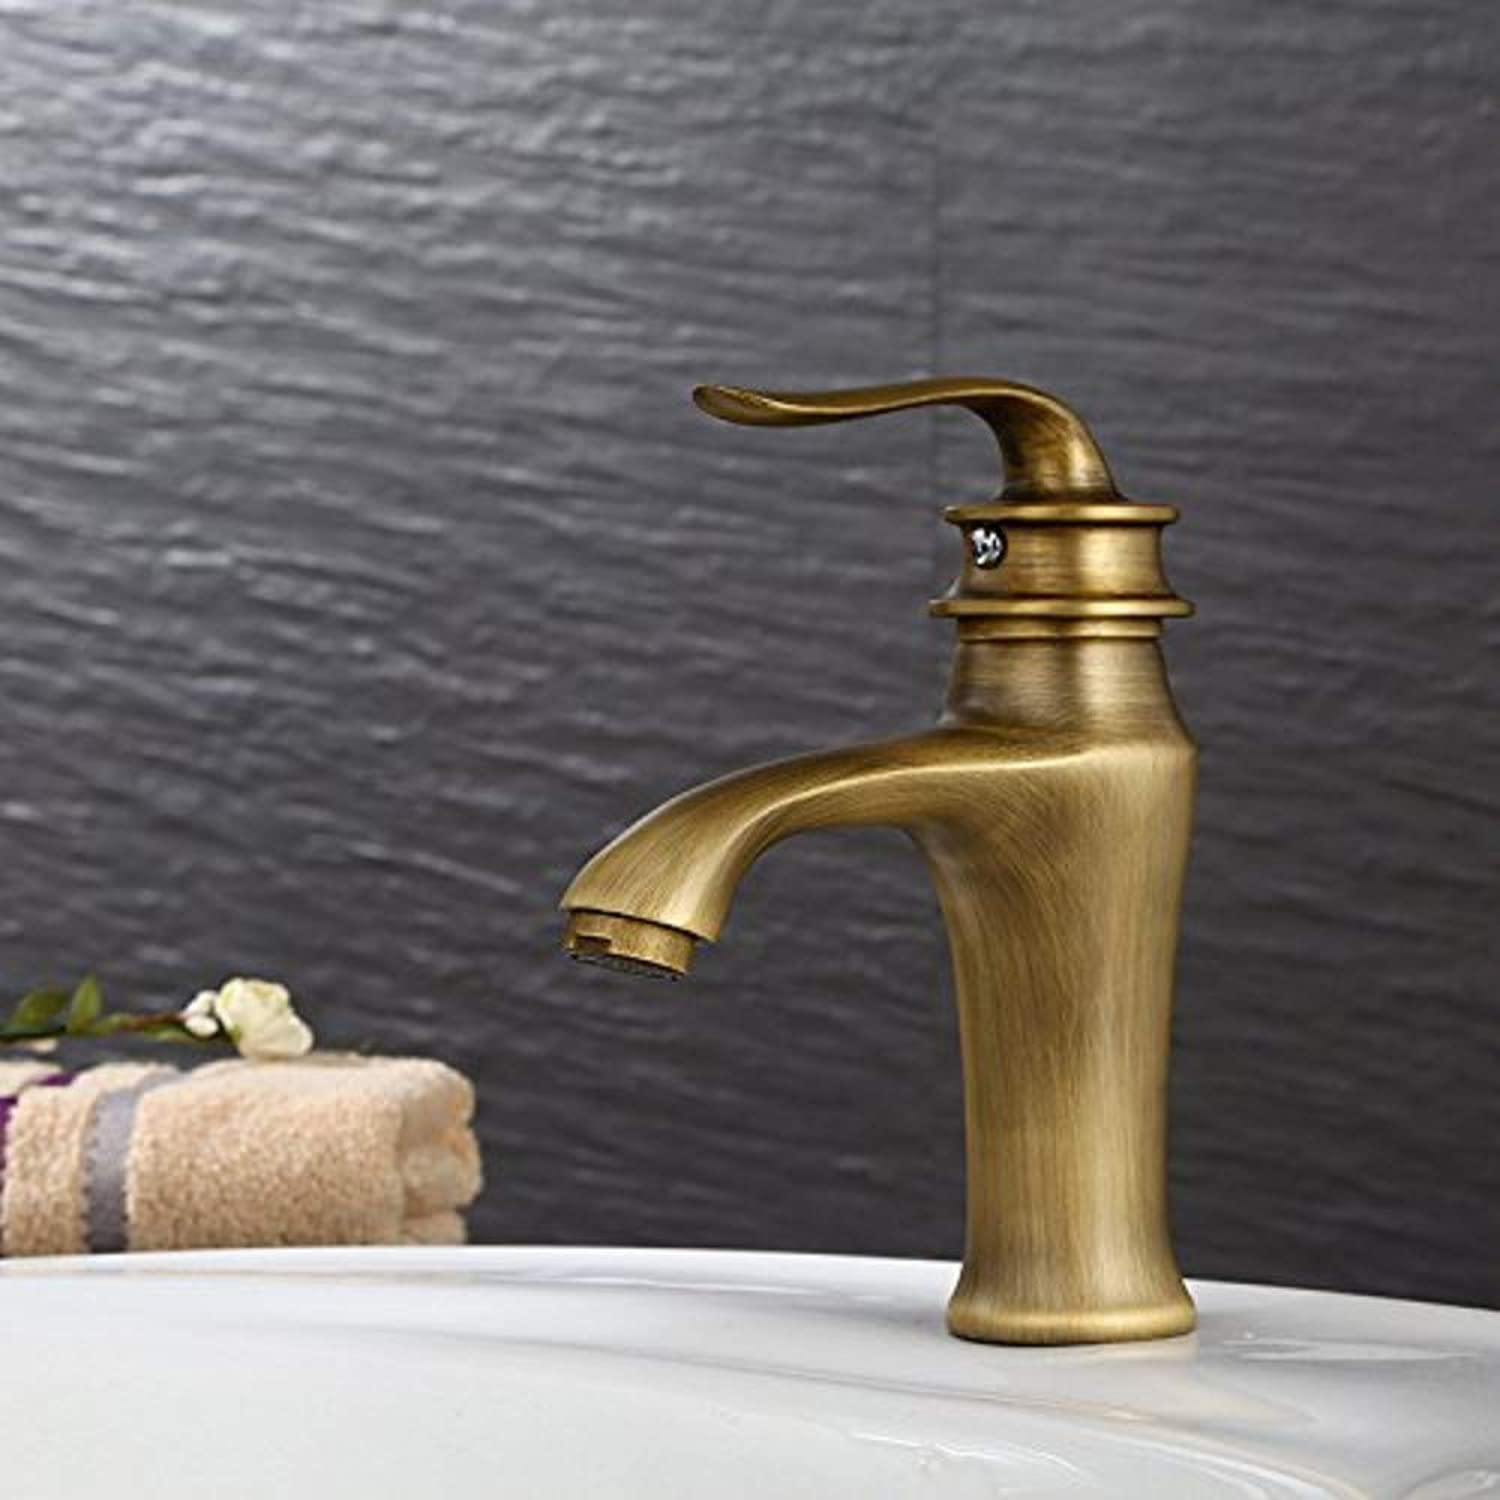 360° redating Faucet Retro Faucetbathroom Antique Basin Faucet Green Bronze Brushed Hot and Cold High Quality Faucet